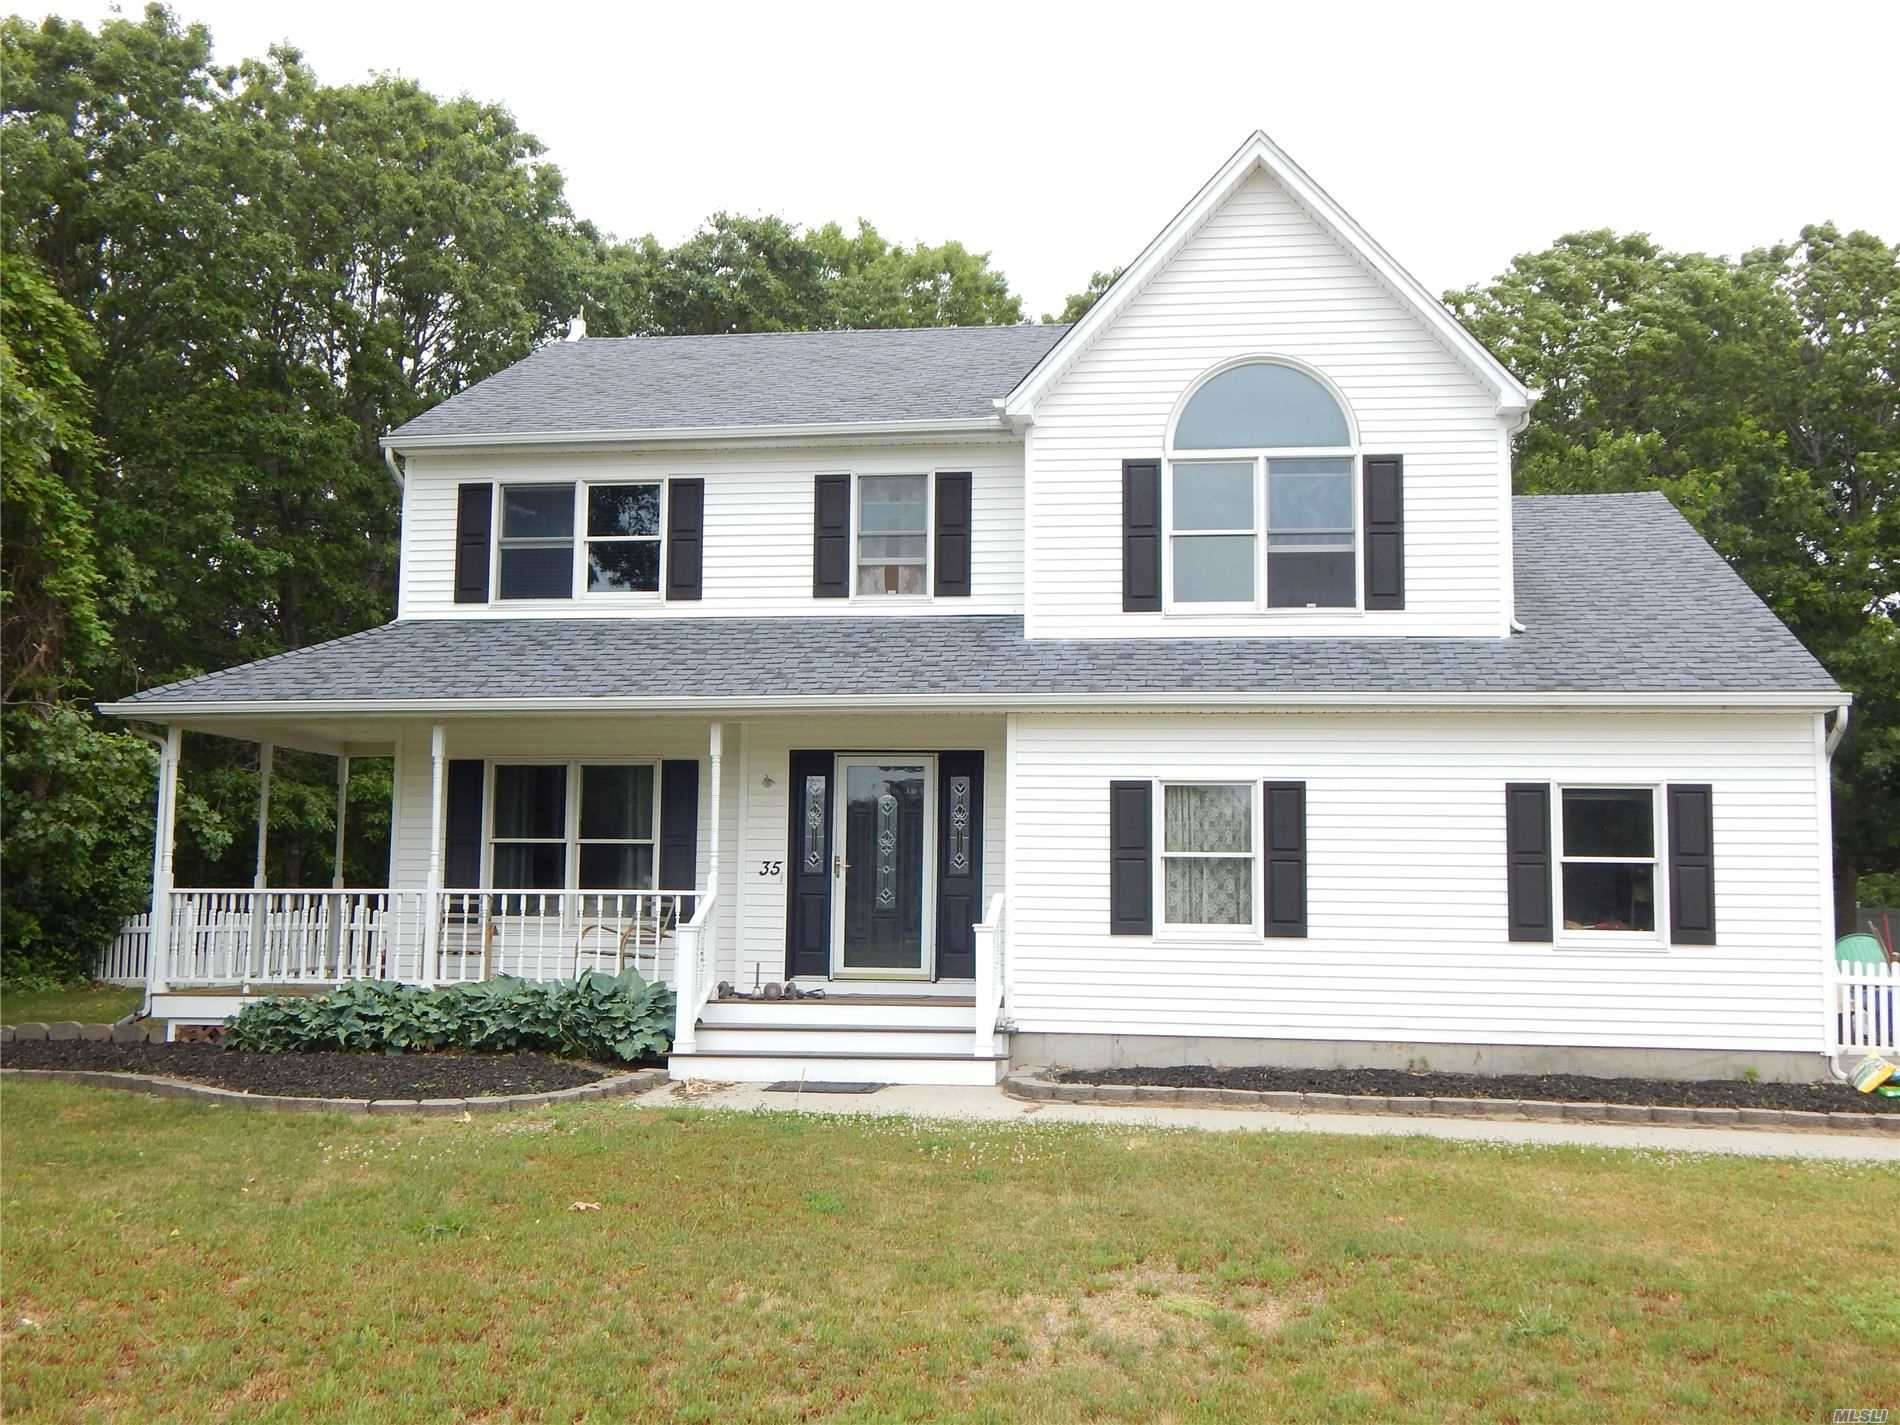 35 Fairway Drive, Wading River NY 11792